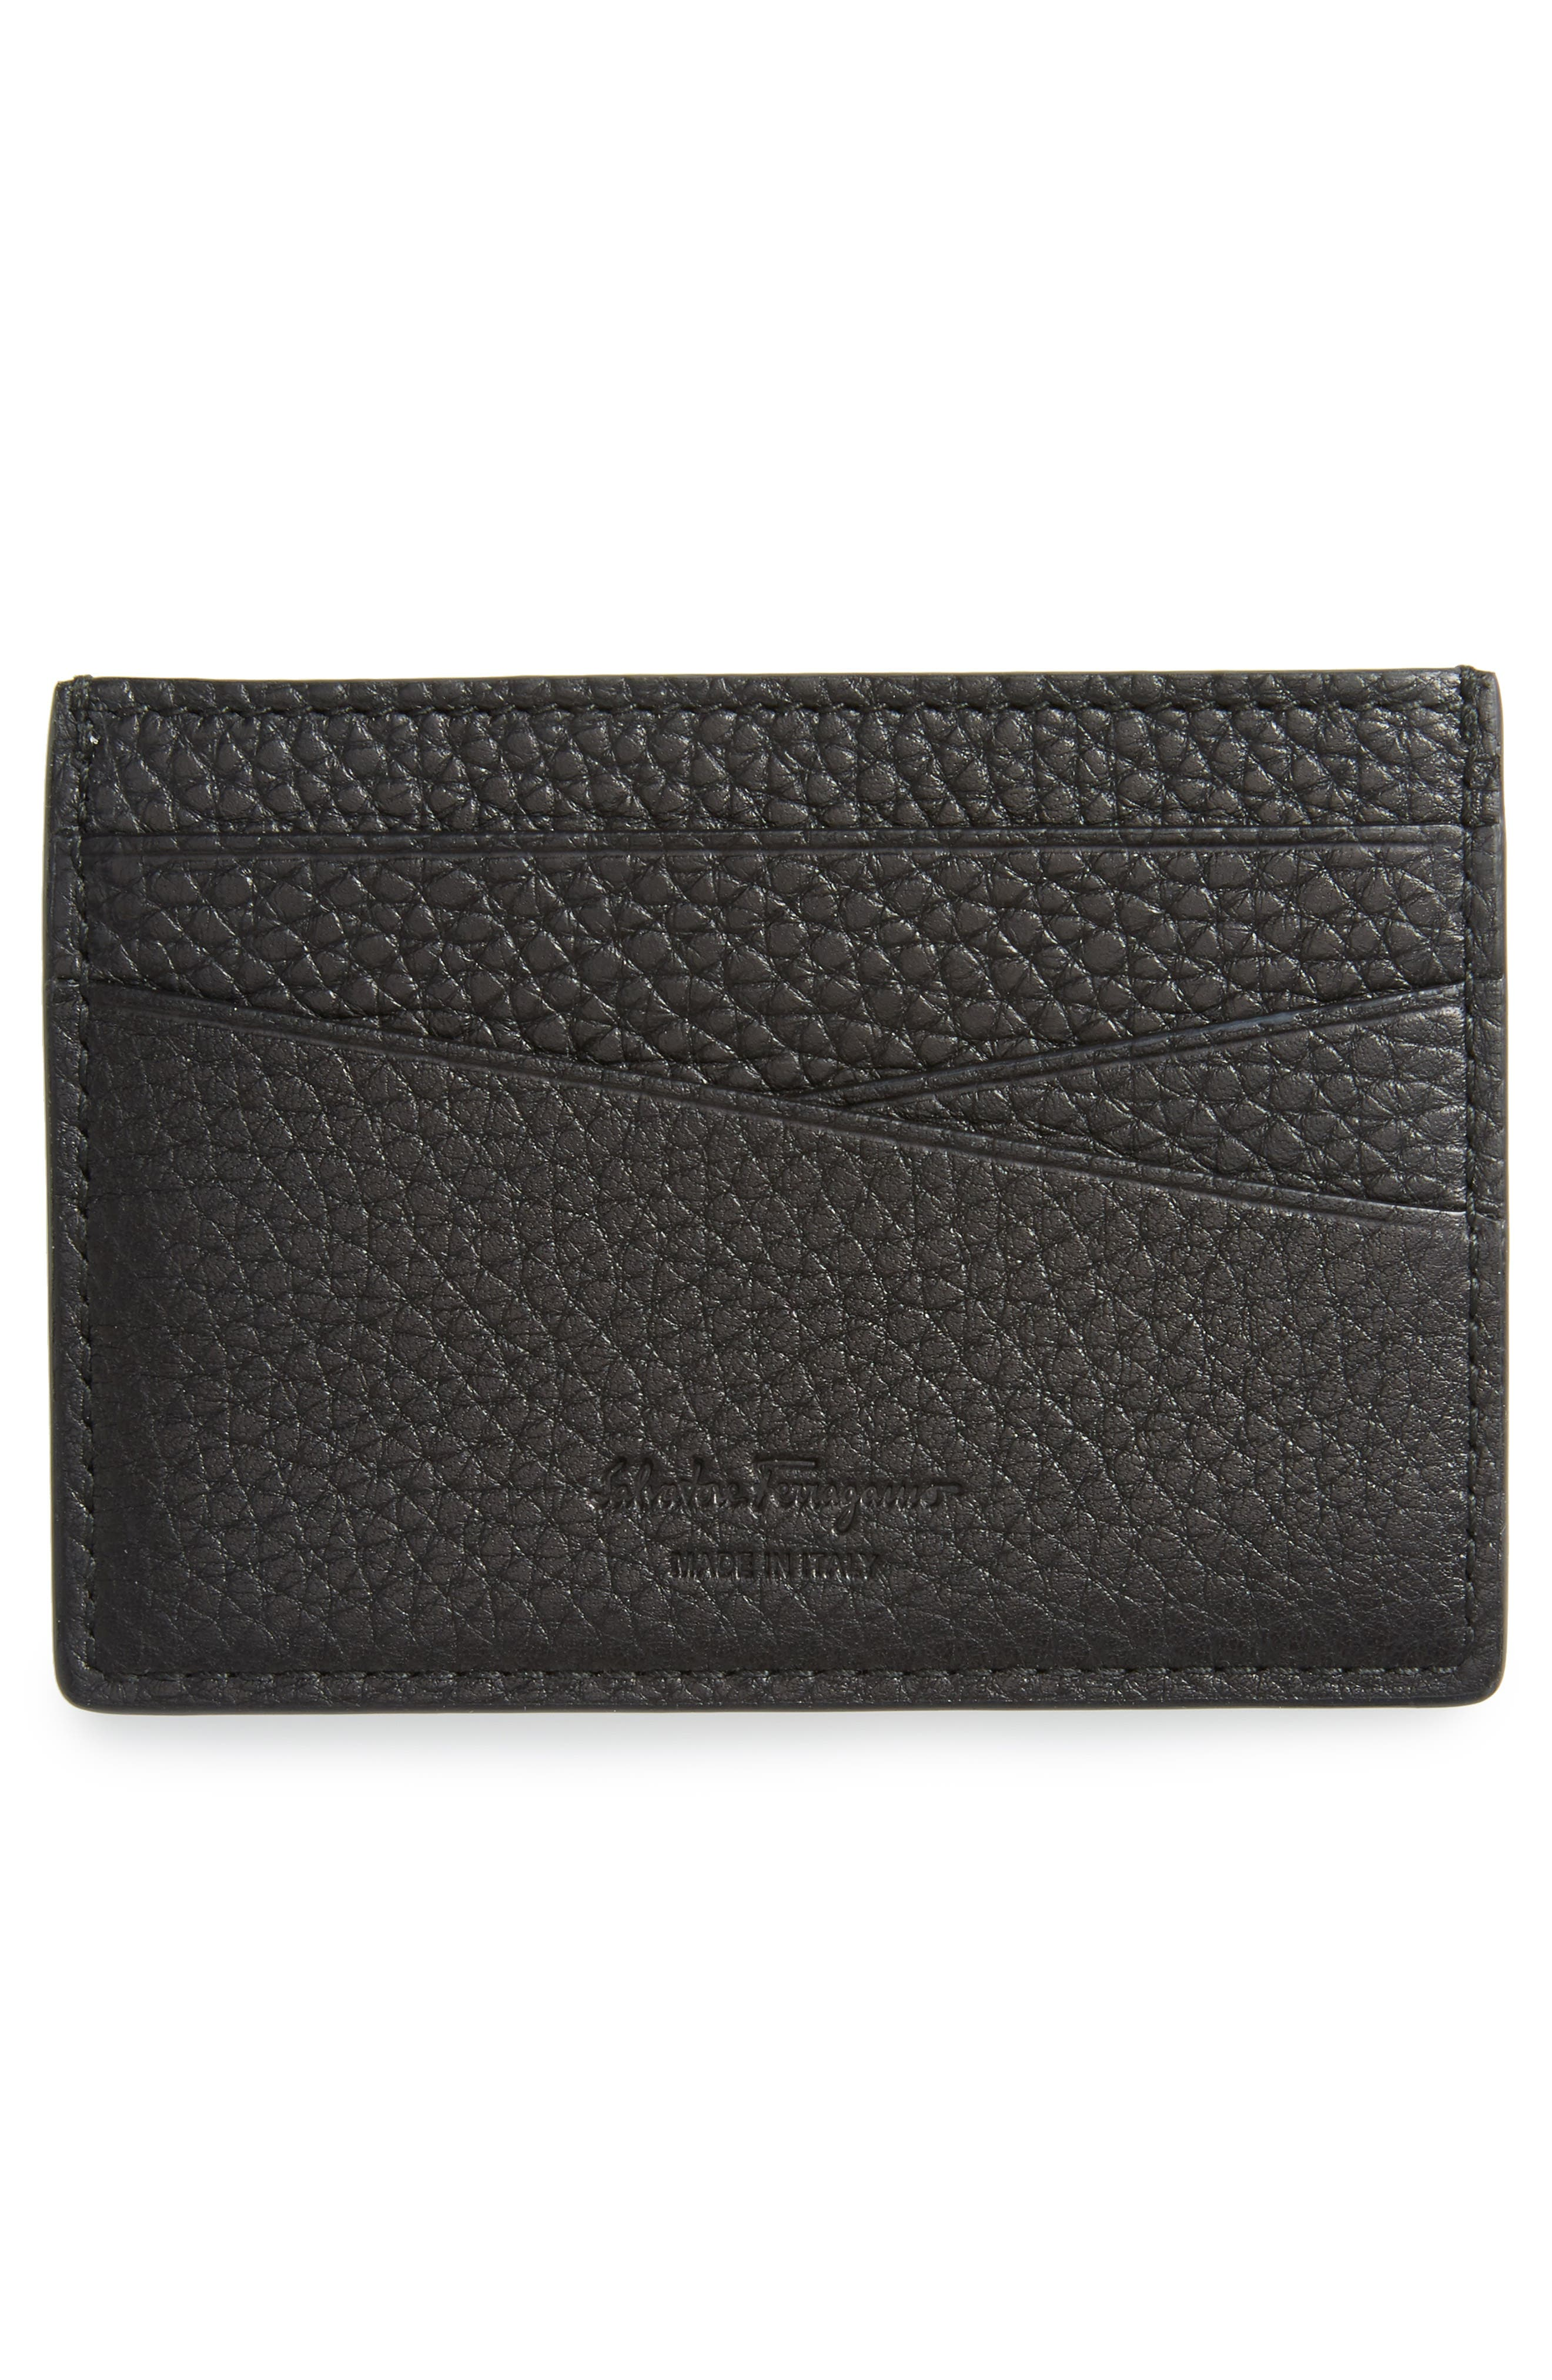 Firenze Leather Card Case,                             Alternate thumbnail 2, color,                             001